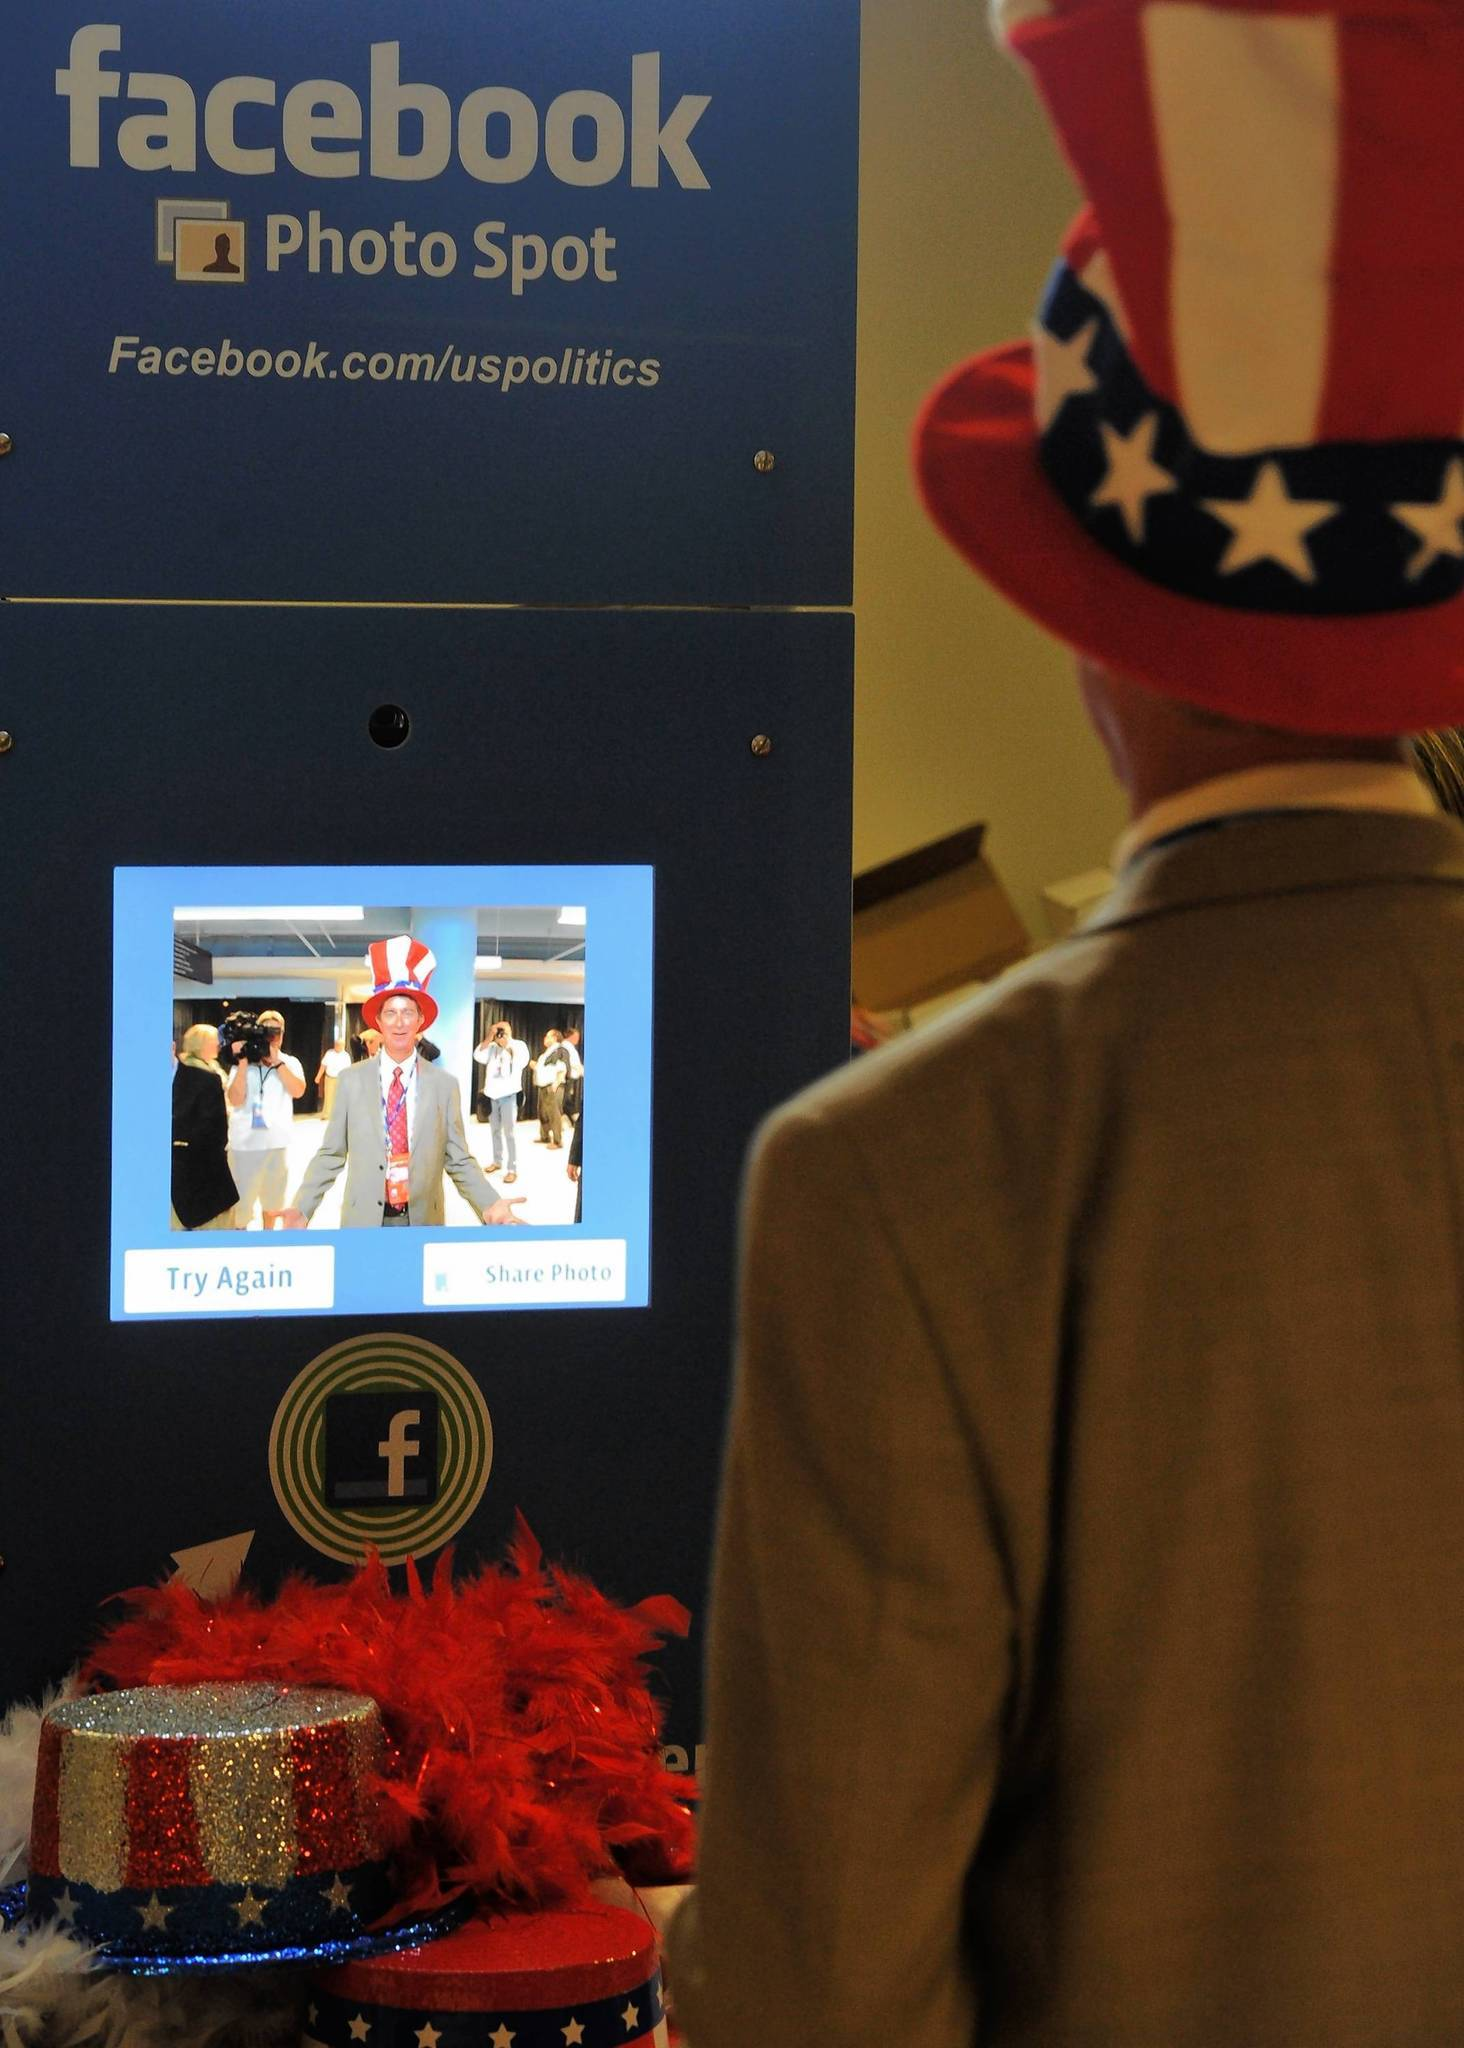 A delegate with a red, white and blue top hat poses in the Facebook photo booth at the Tampa Bay Times Forum in Tampa, Florida, on August 29, 2012 ahead of the day's Republican National Convention events.